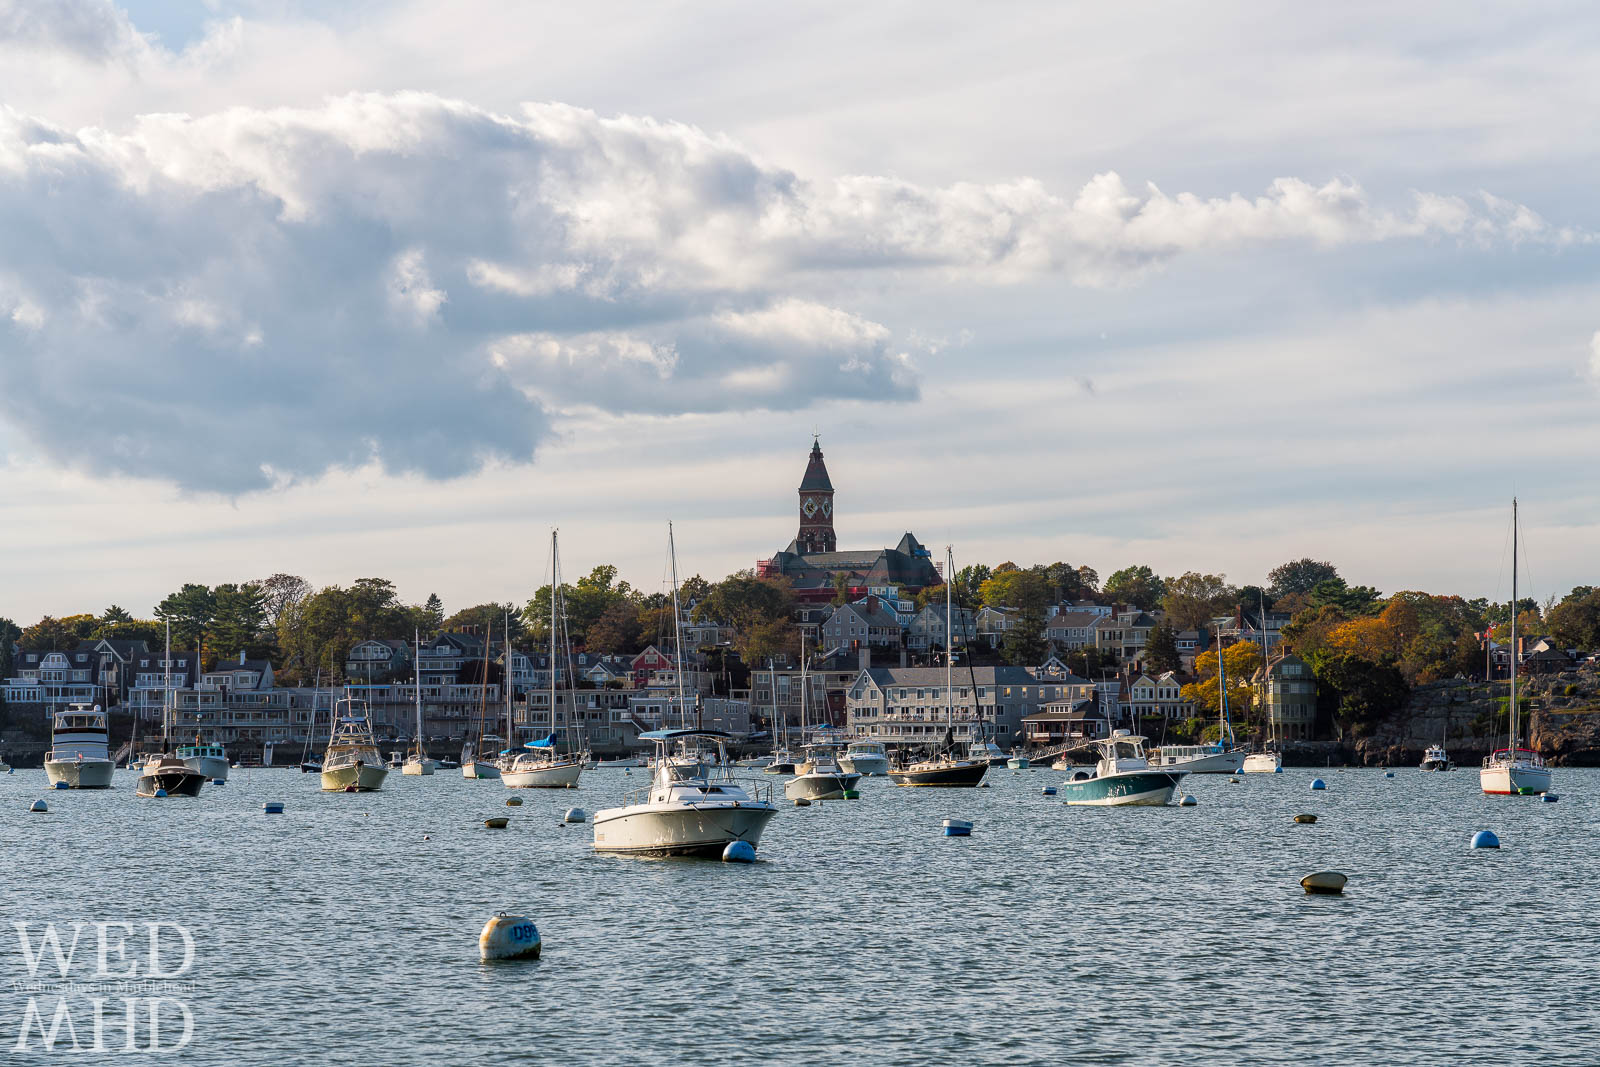 Leaves change color across the harbor as the first signs of fall in Marblehead on a mid-October day with many boats still tied to their moorings